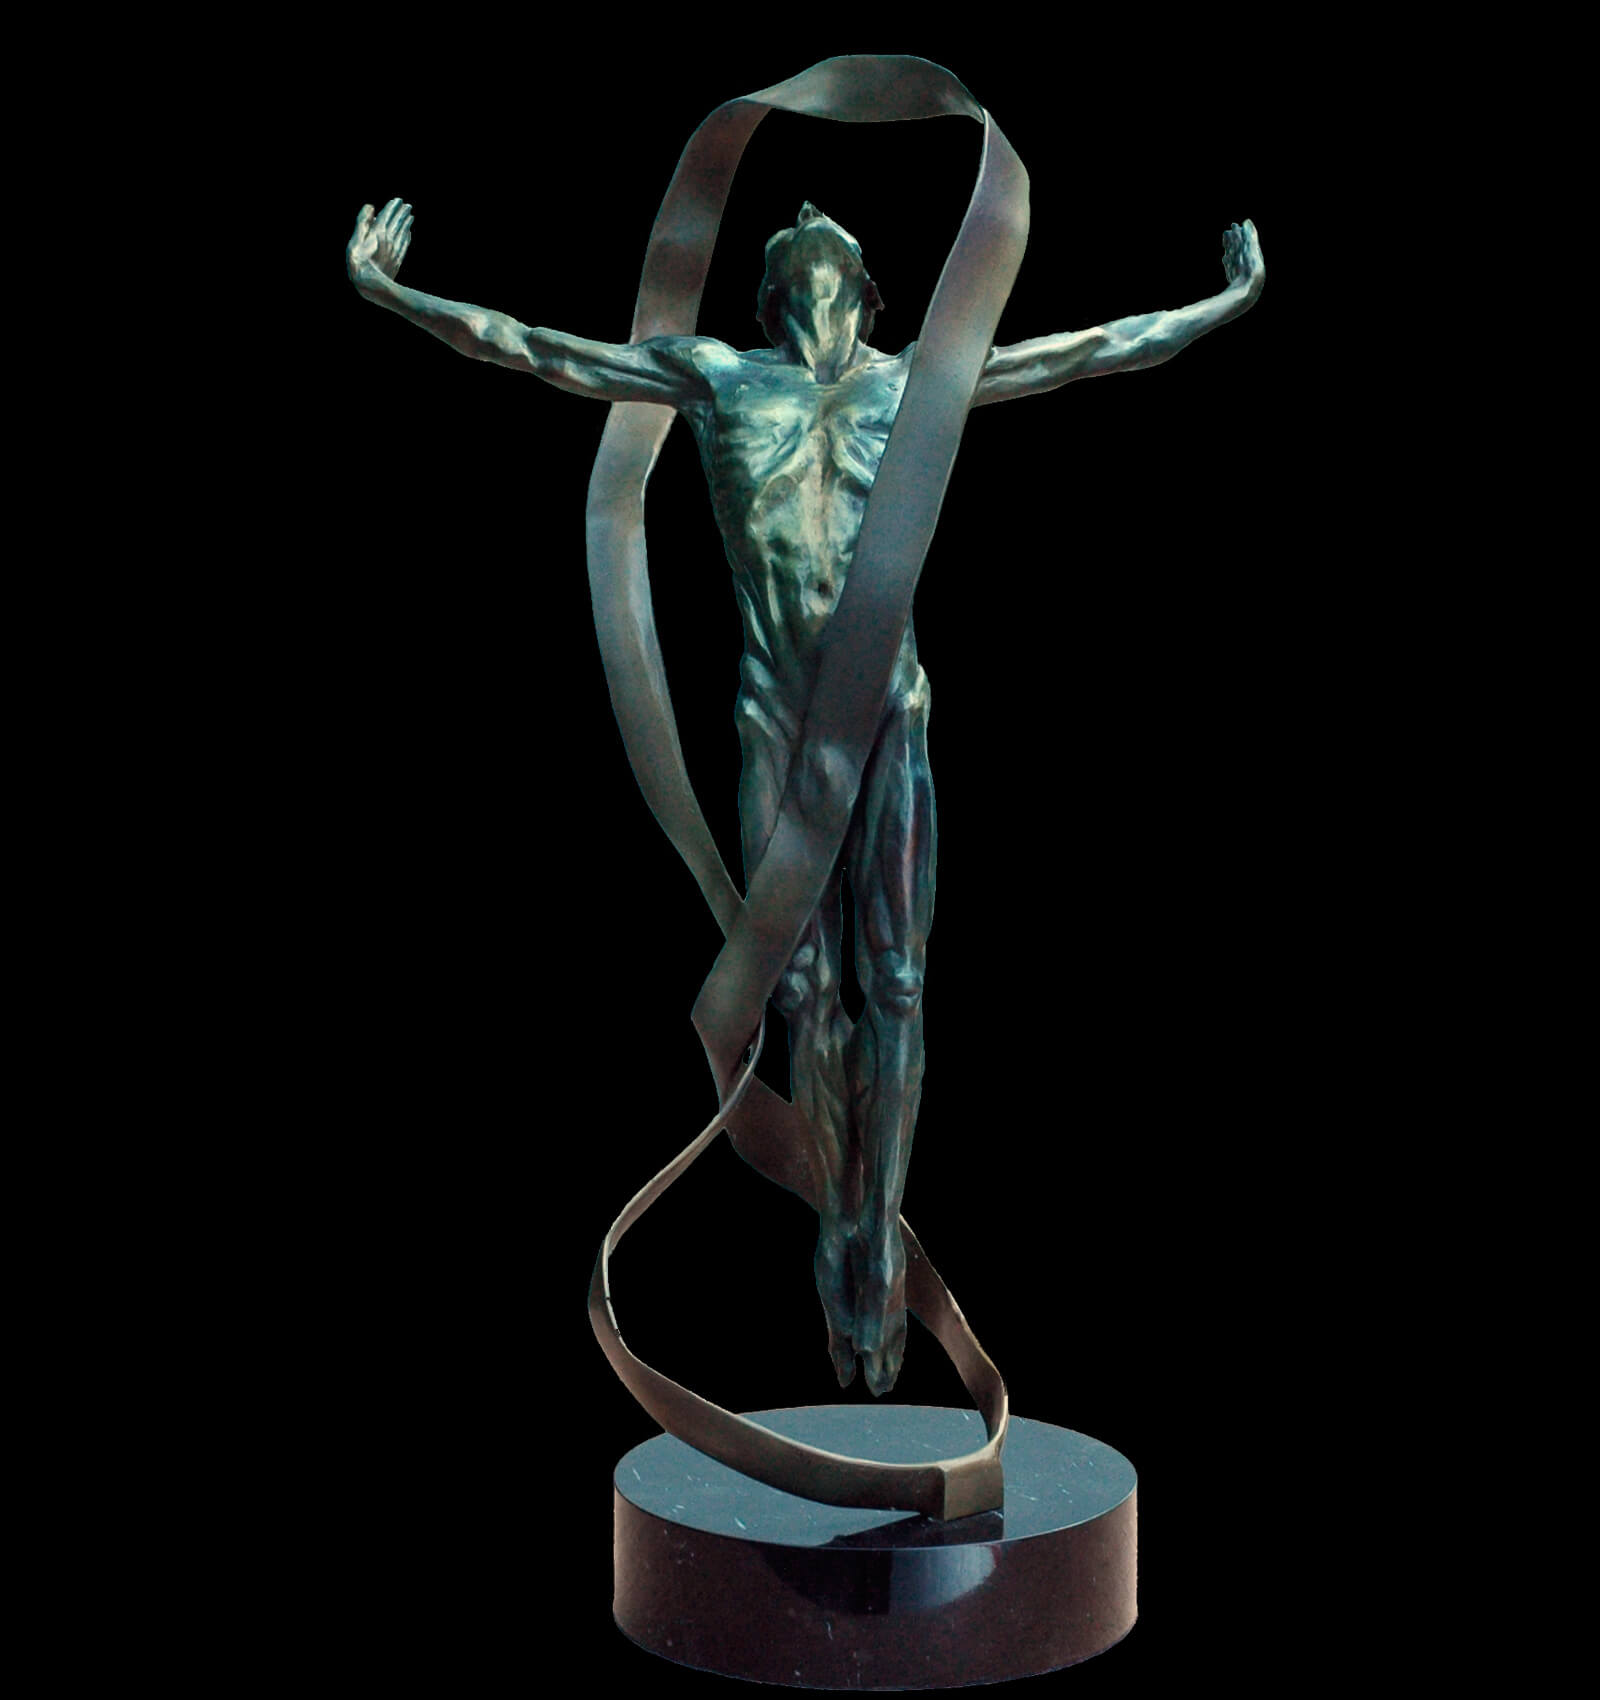 Echoes a figurative dance bronze sculpture of a male dancer suspended by a Mobius strip copyright 2014 by Andrew DeVries